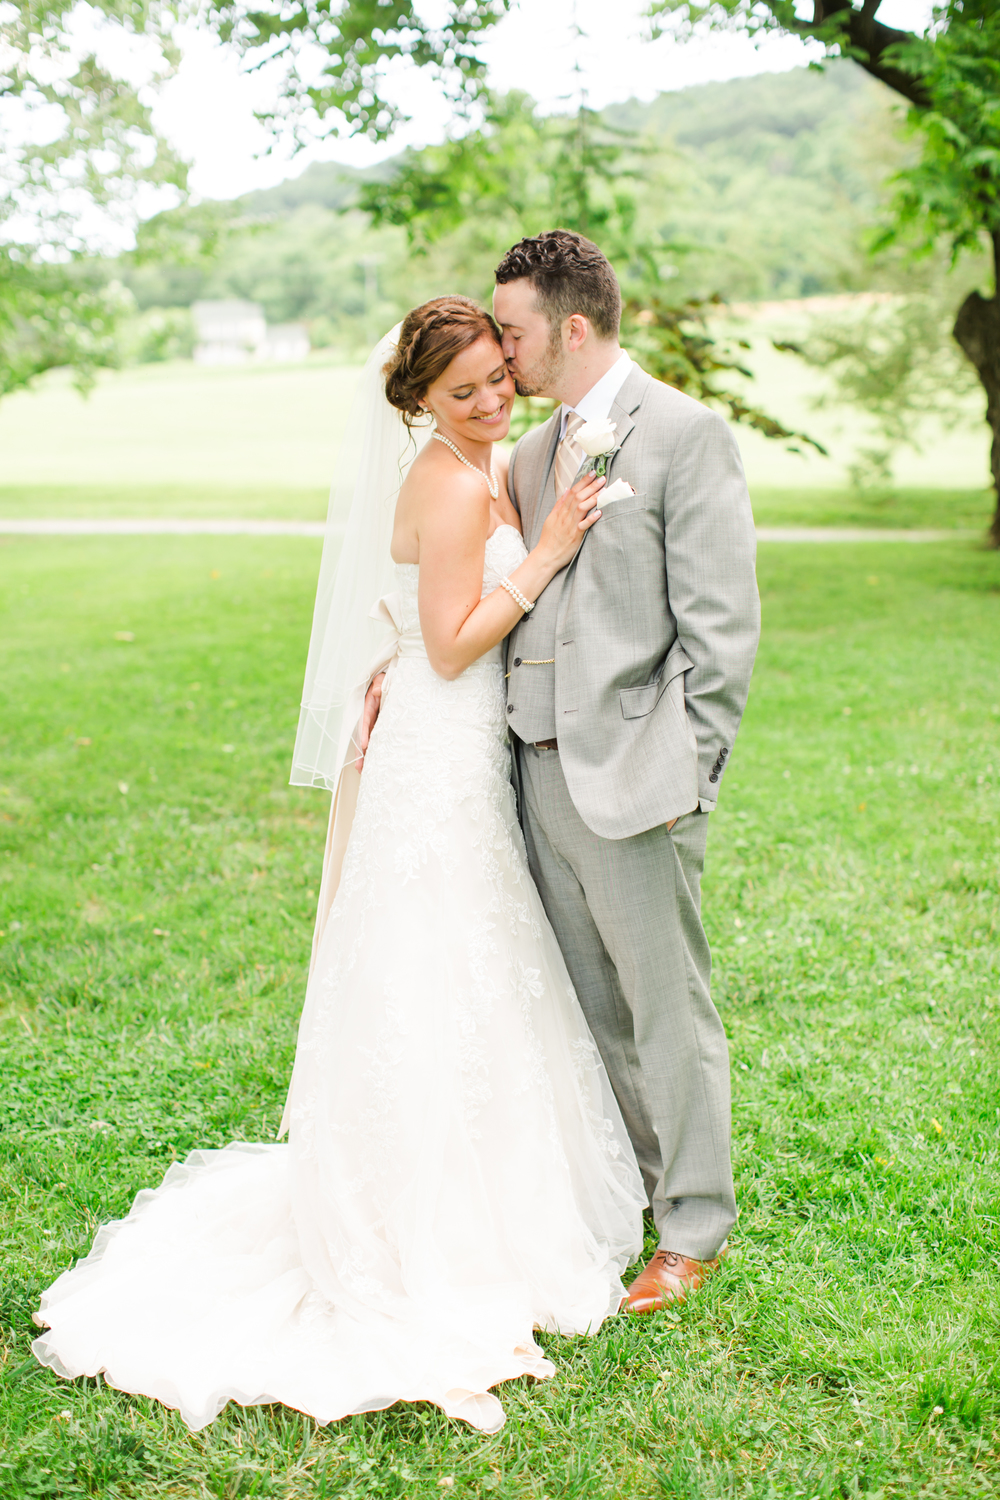 Whitehall_Estate_Wedding_Katlyn&Mike_Wed-657.JPG